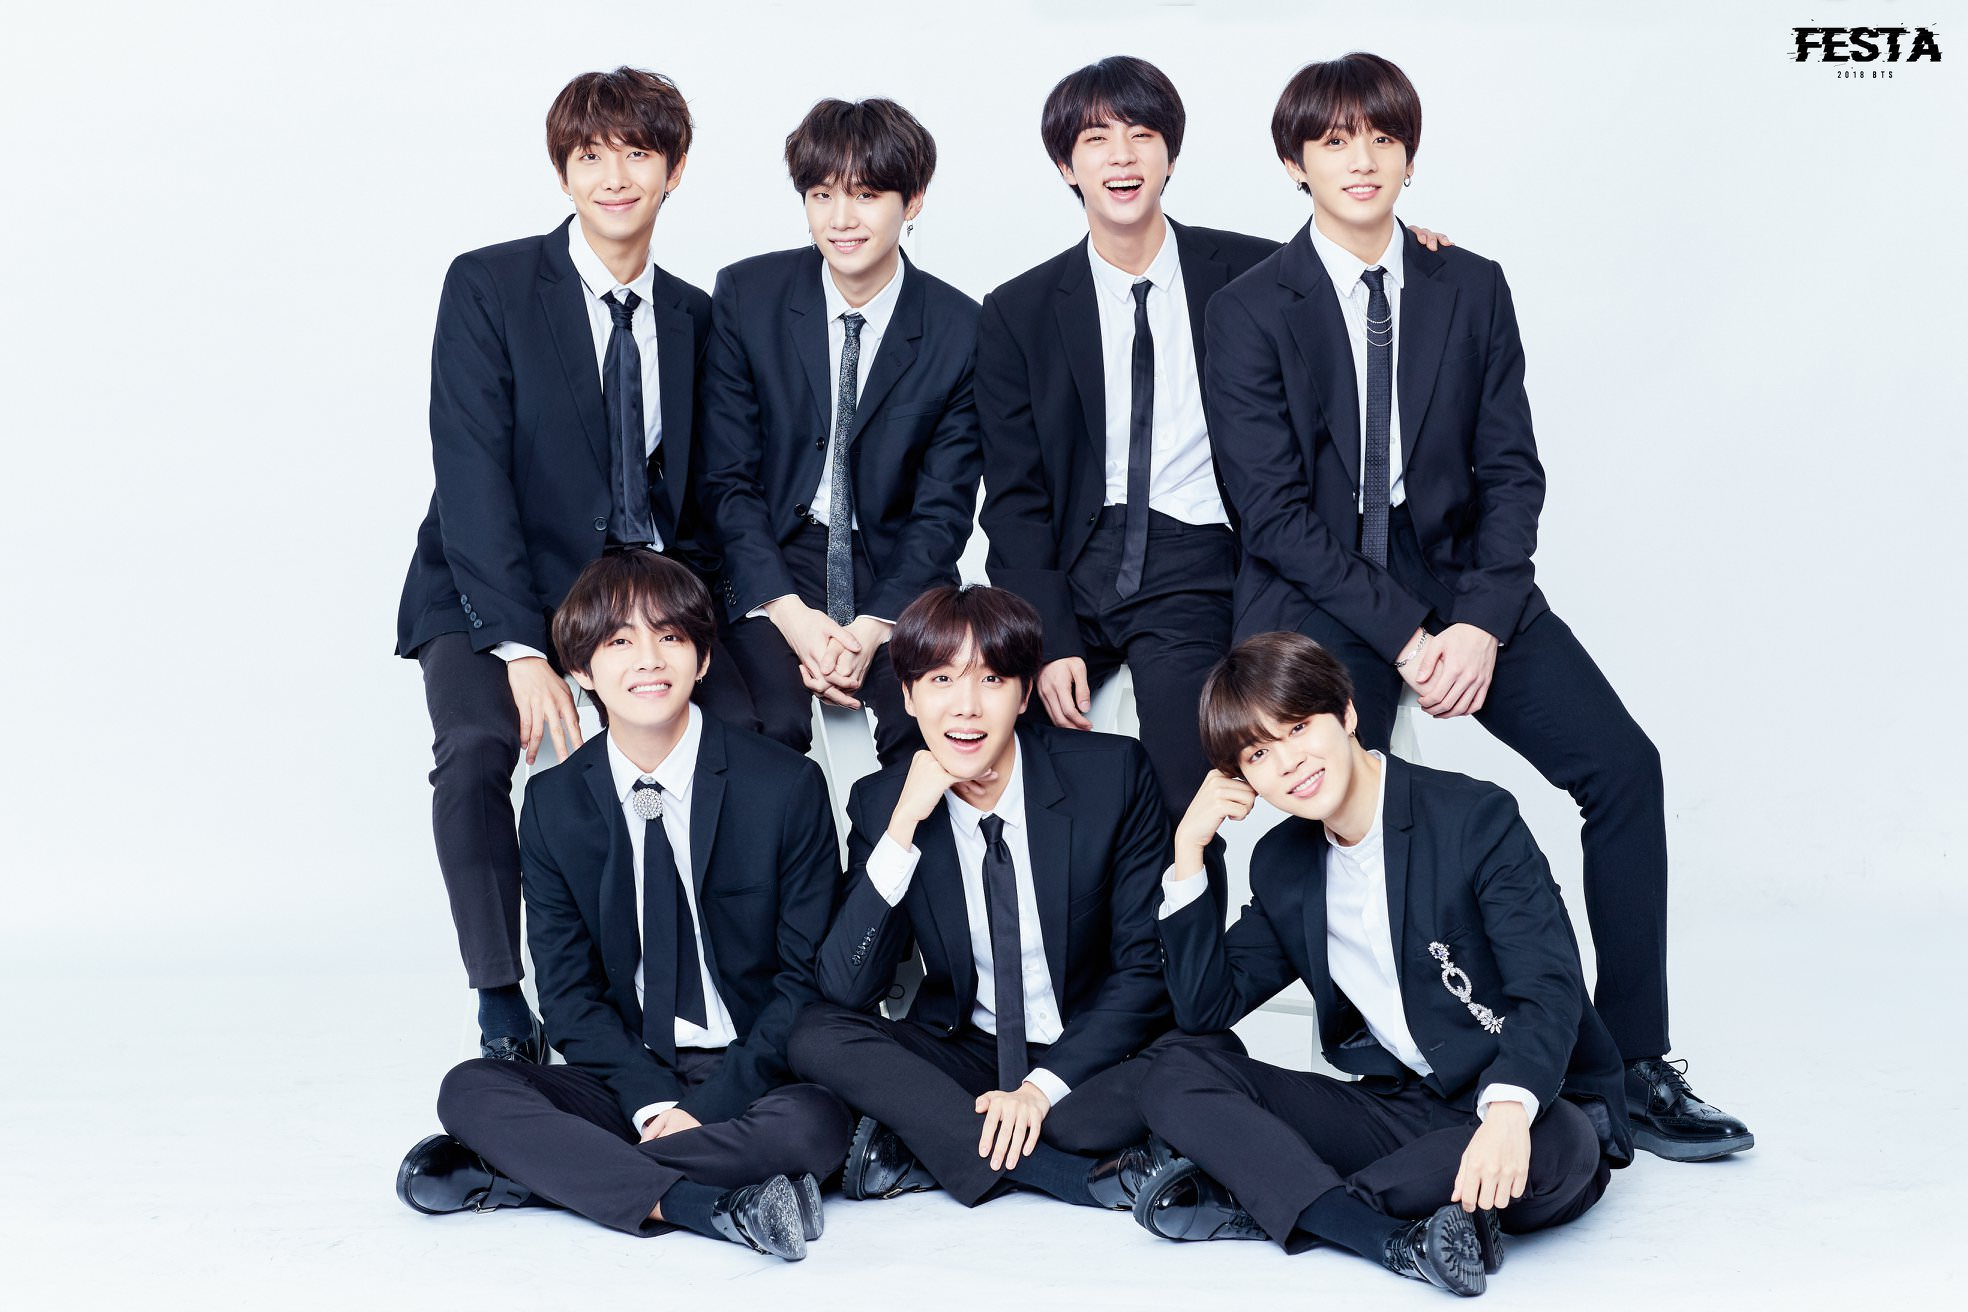 I Had To Check These Bts Festa 2018 363762 Hd